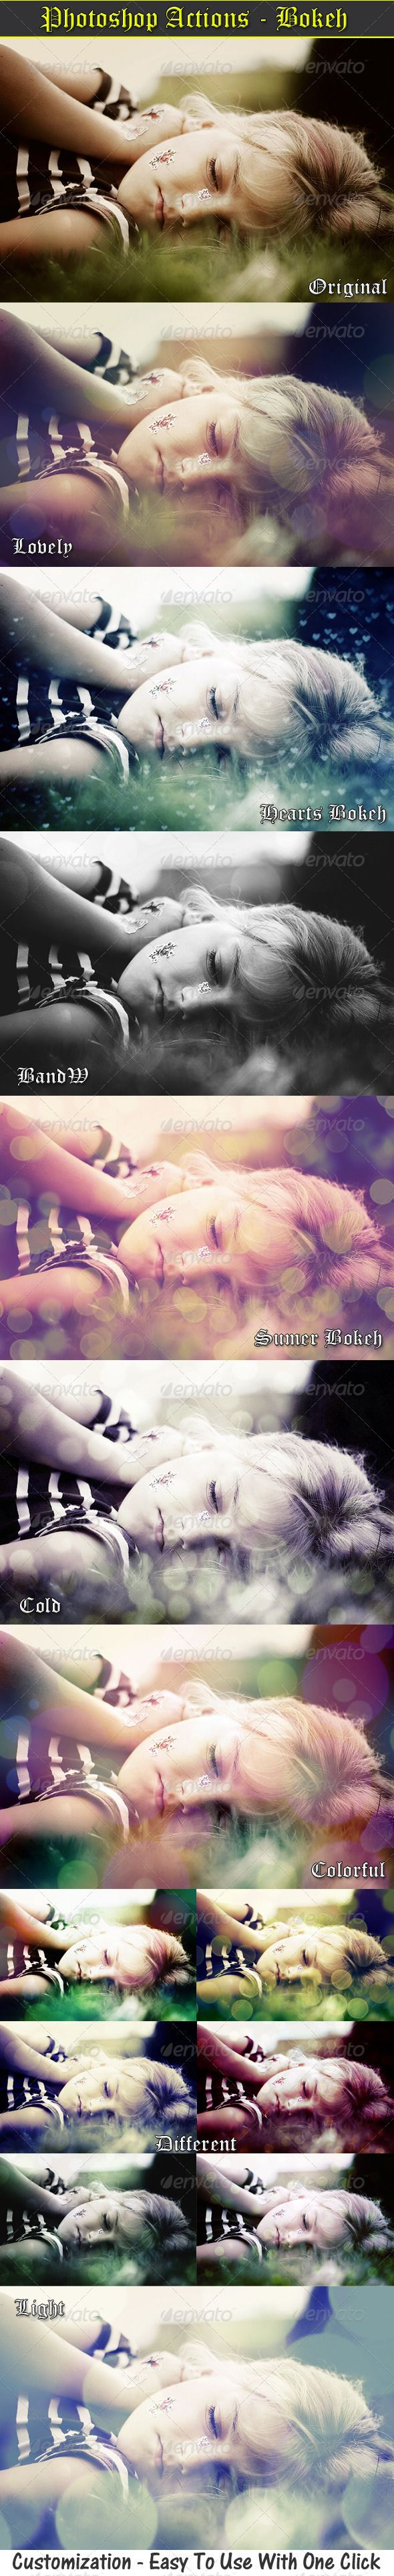 Photo Actions - Bokeh Effects - GraphicRiver $4